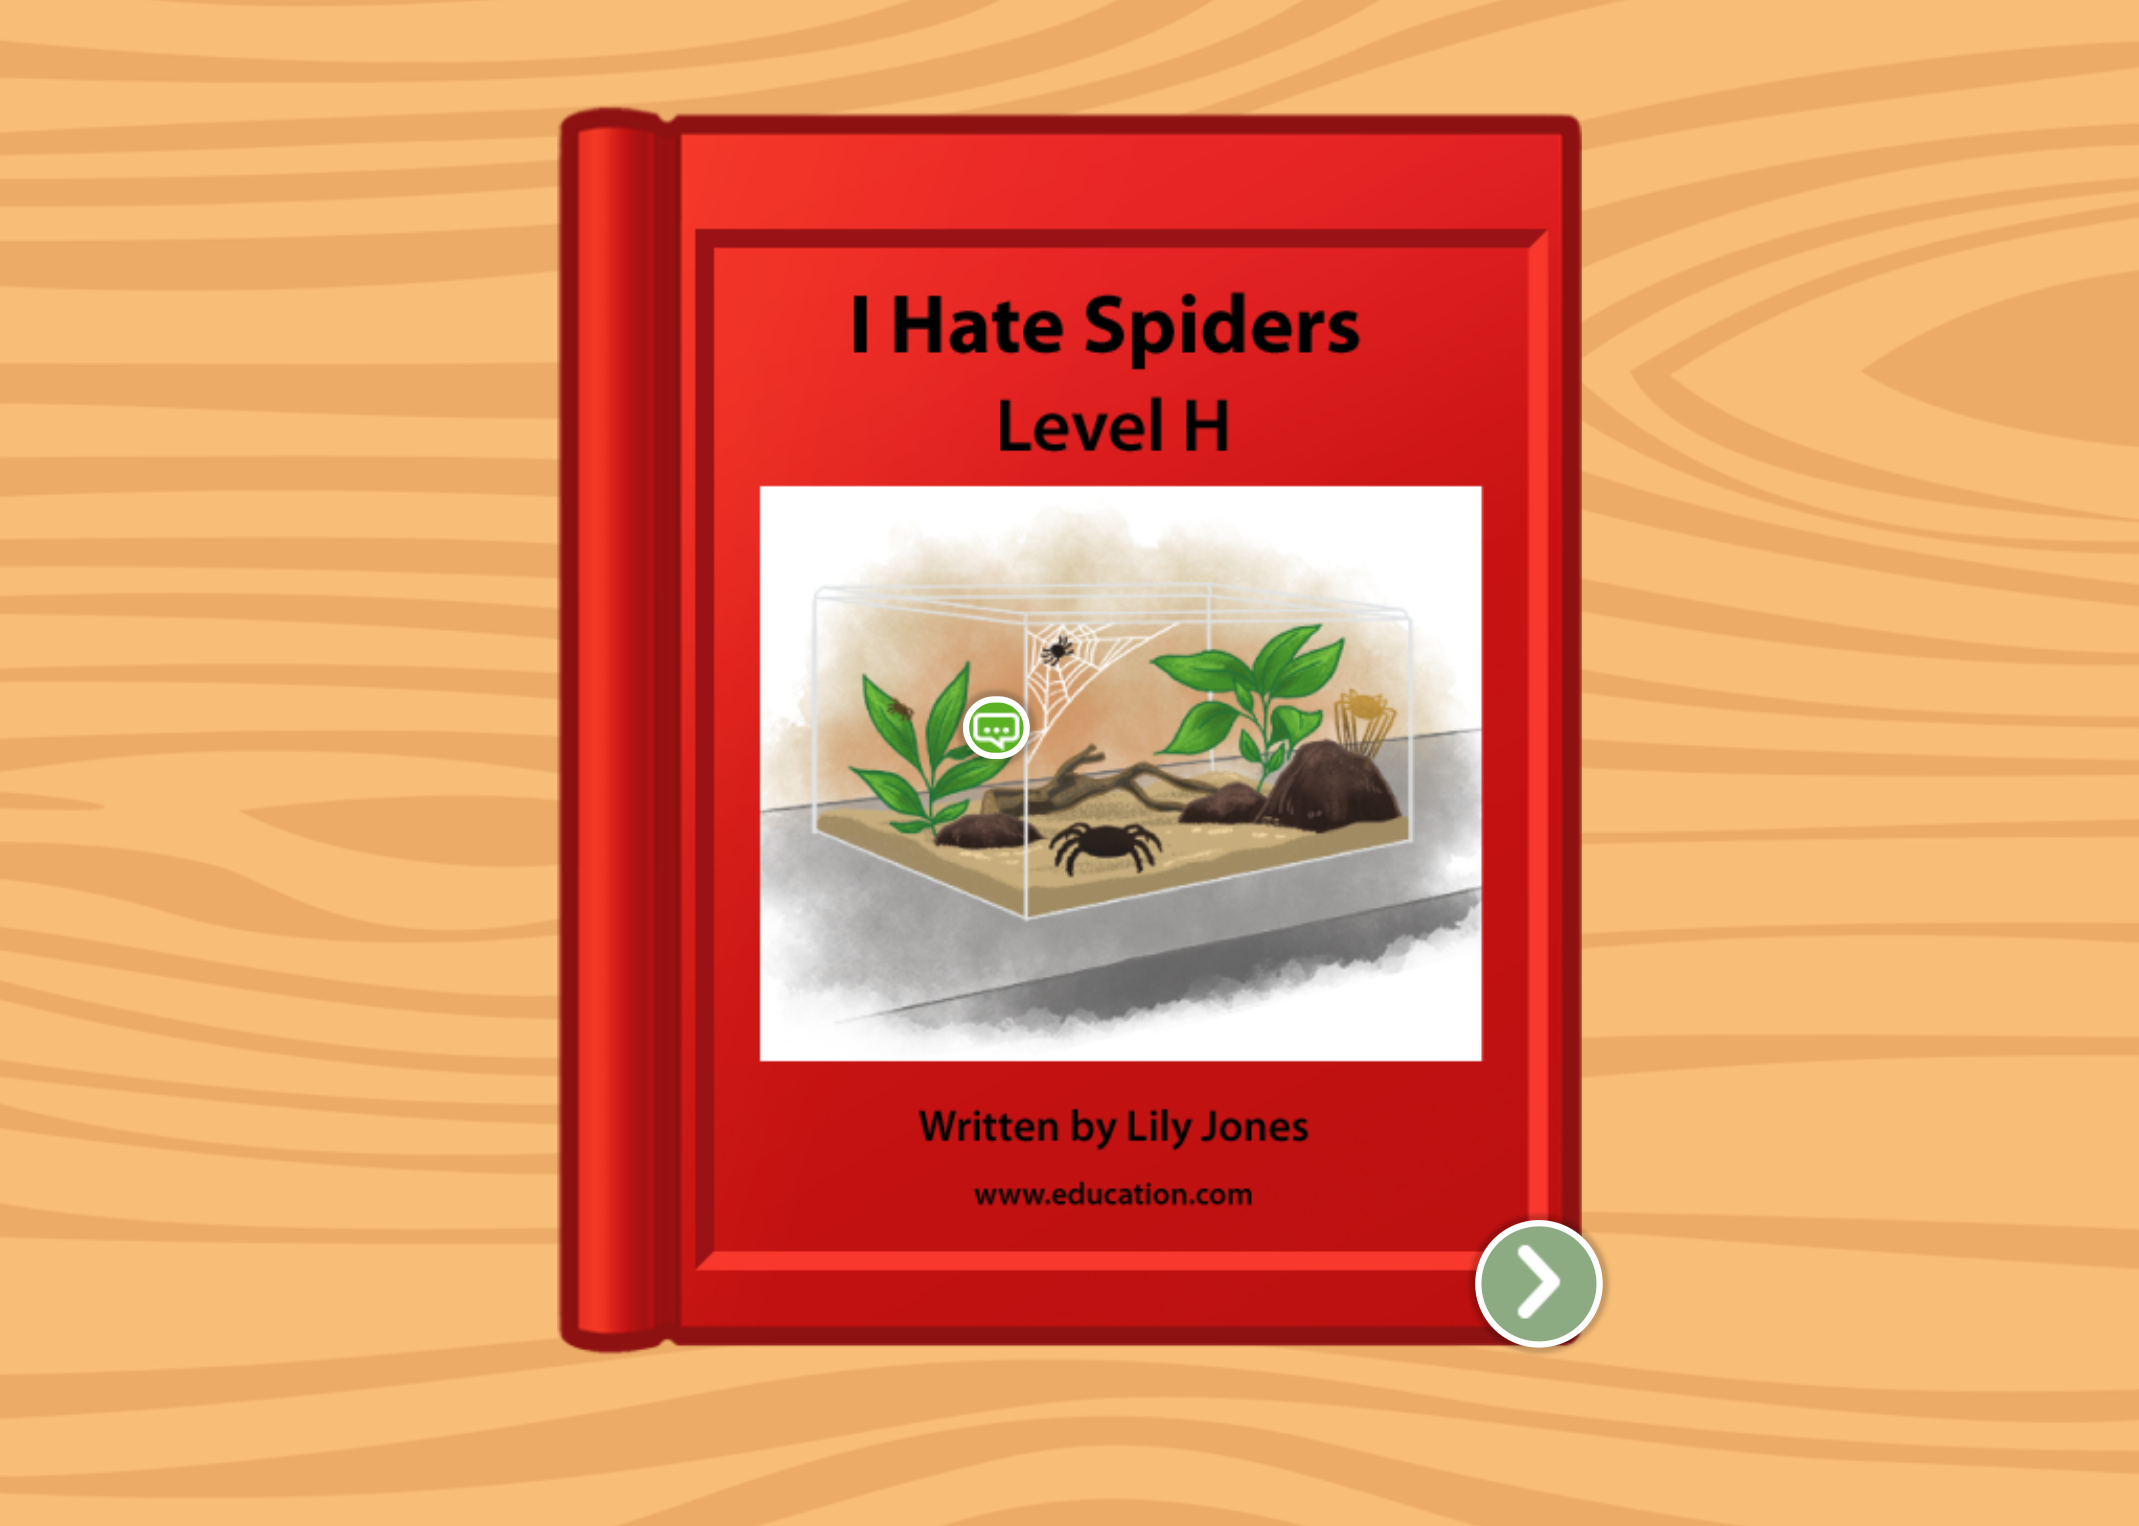 1st grade Reading & Writing Stories: I Hate Spiders: Level H